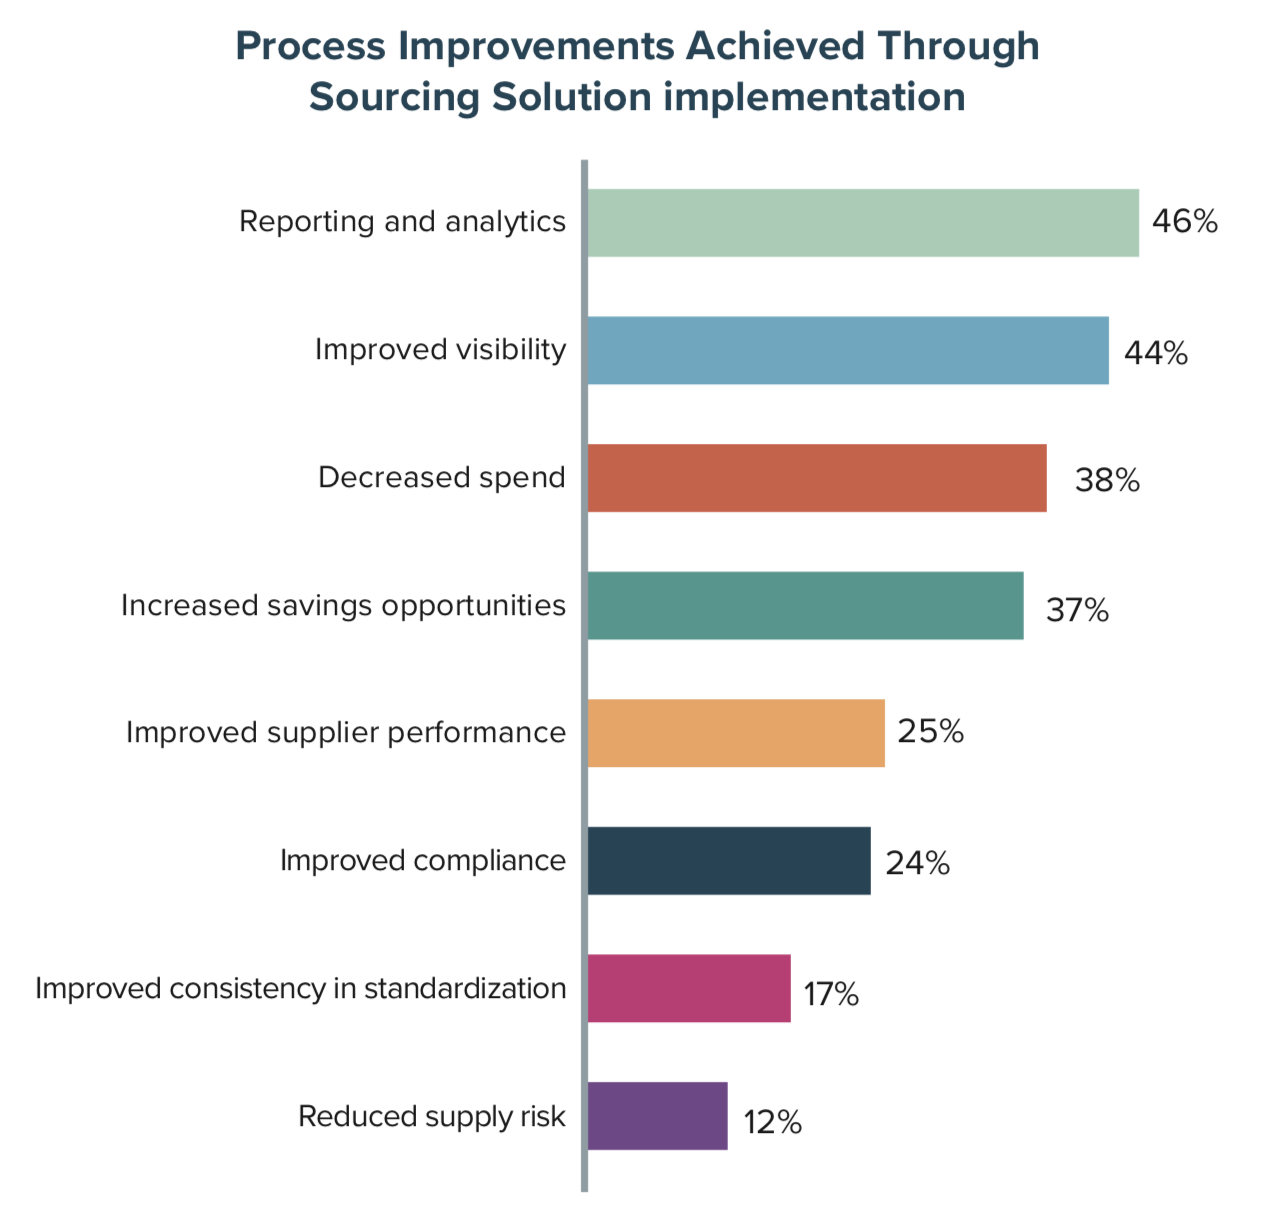 Process Improvements Achieved Through Sourcing Solution Implementation